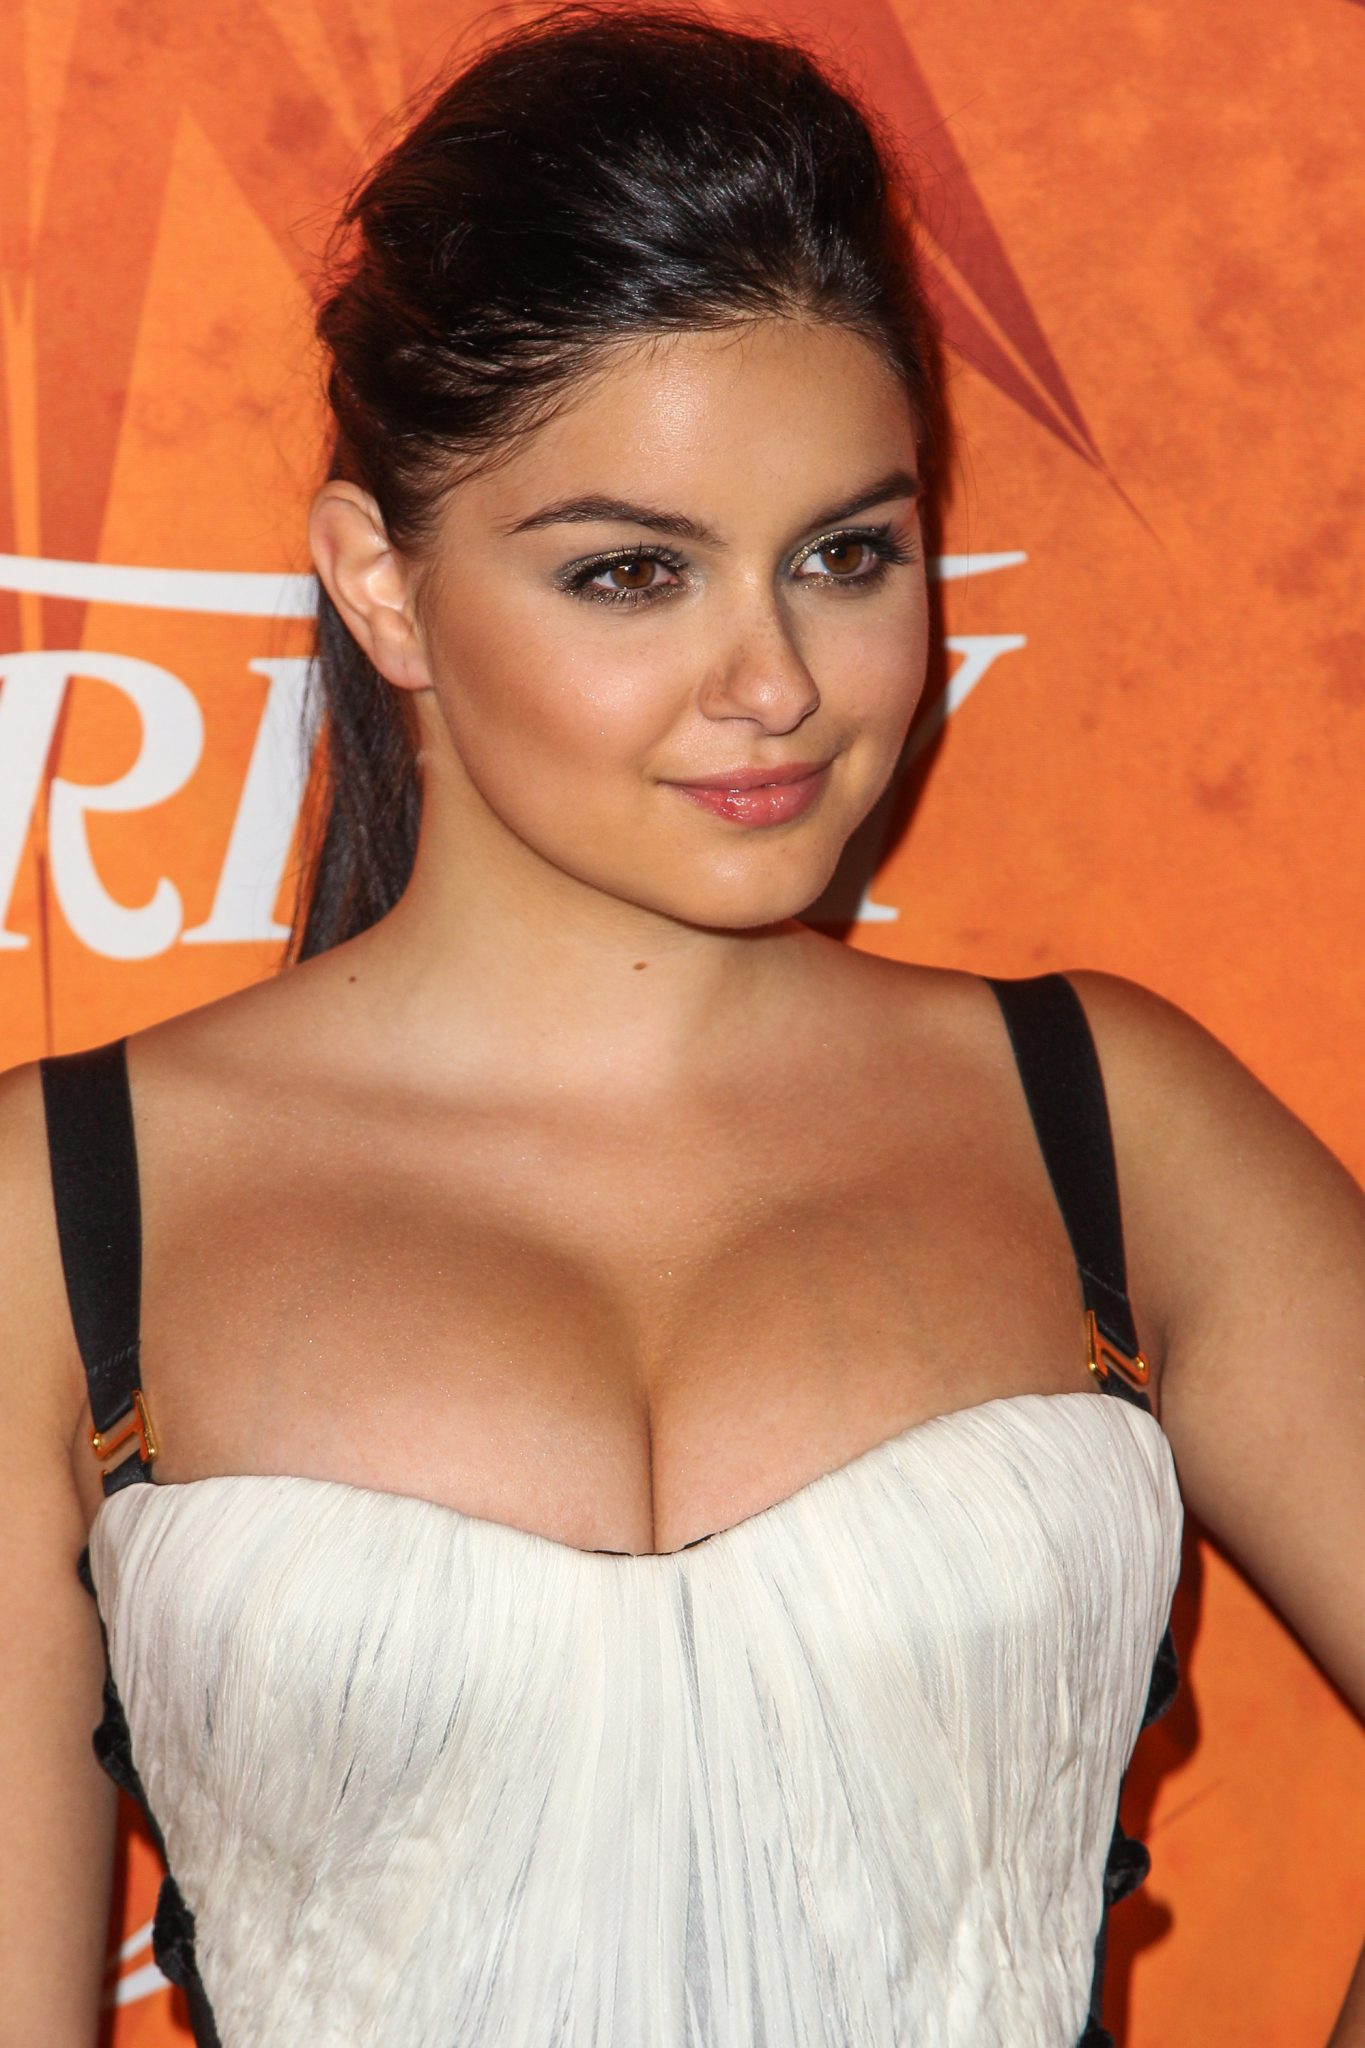 Ariel Winter sexy lady photo